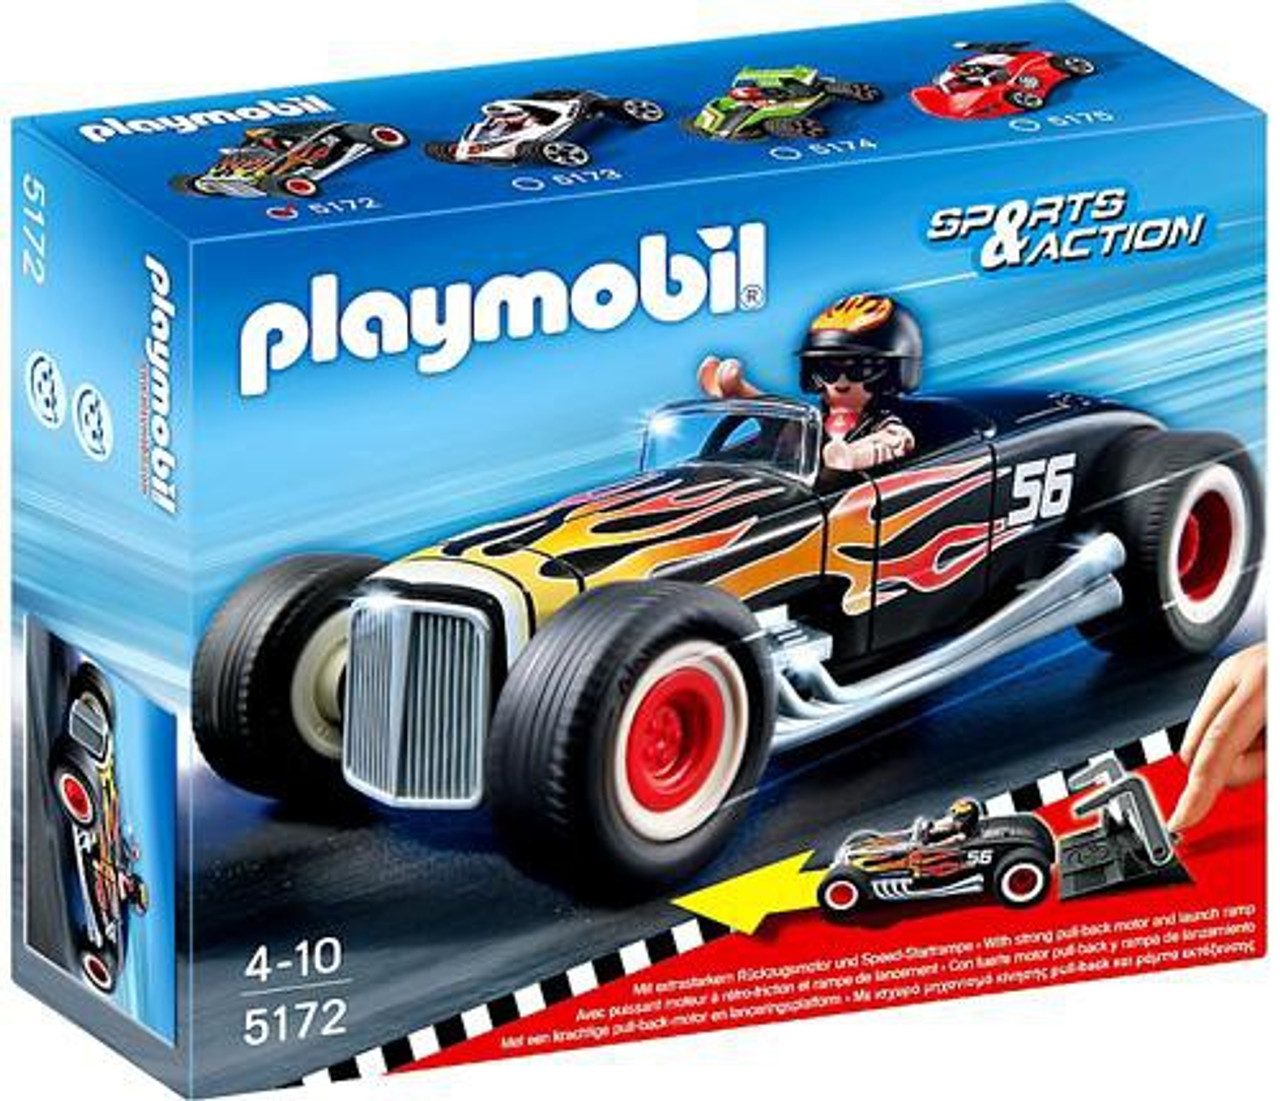 Playmobil Sports & Action Heat Racer Set #5172